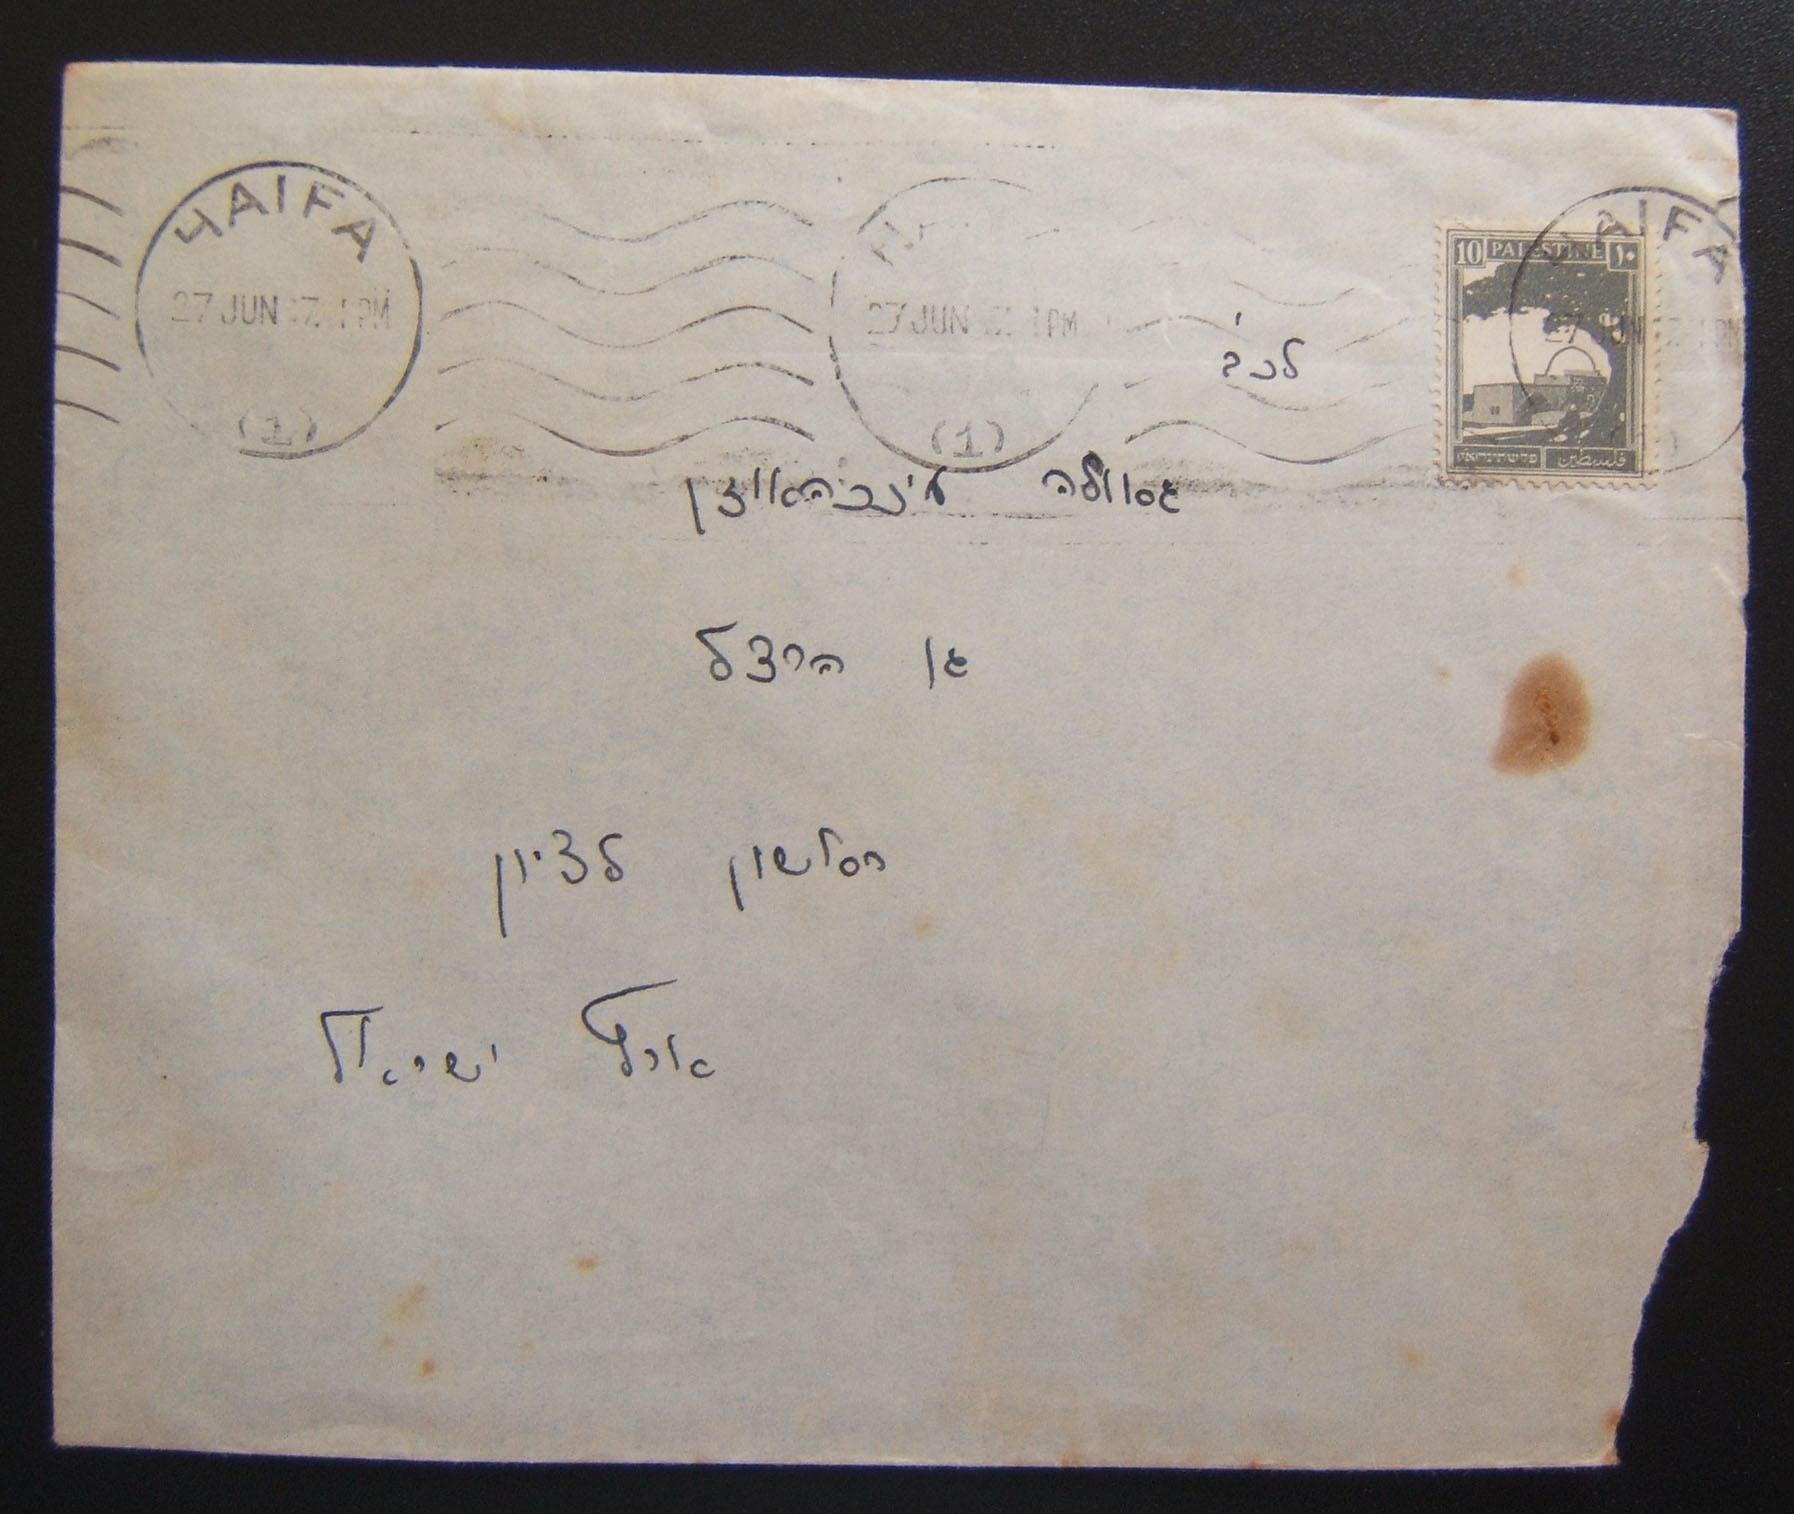 Privately transported mail: cv ex HAIFA to RLZ frk'd 10m, pmk'd 27 JUN 47 1 (or 4)PM.